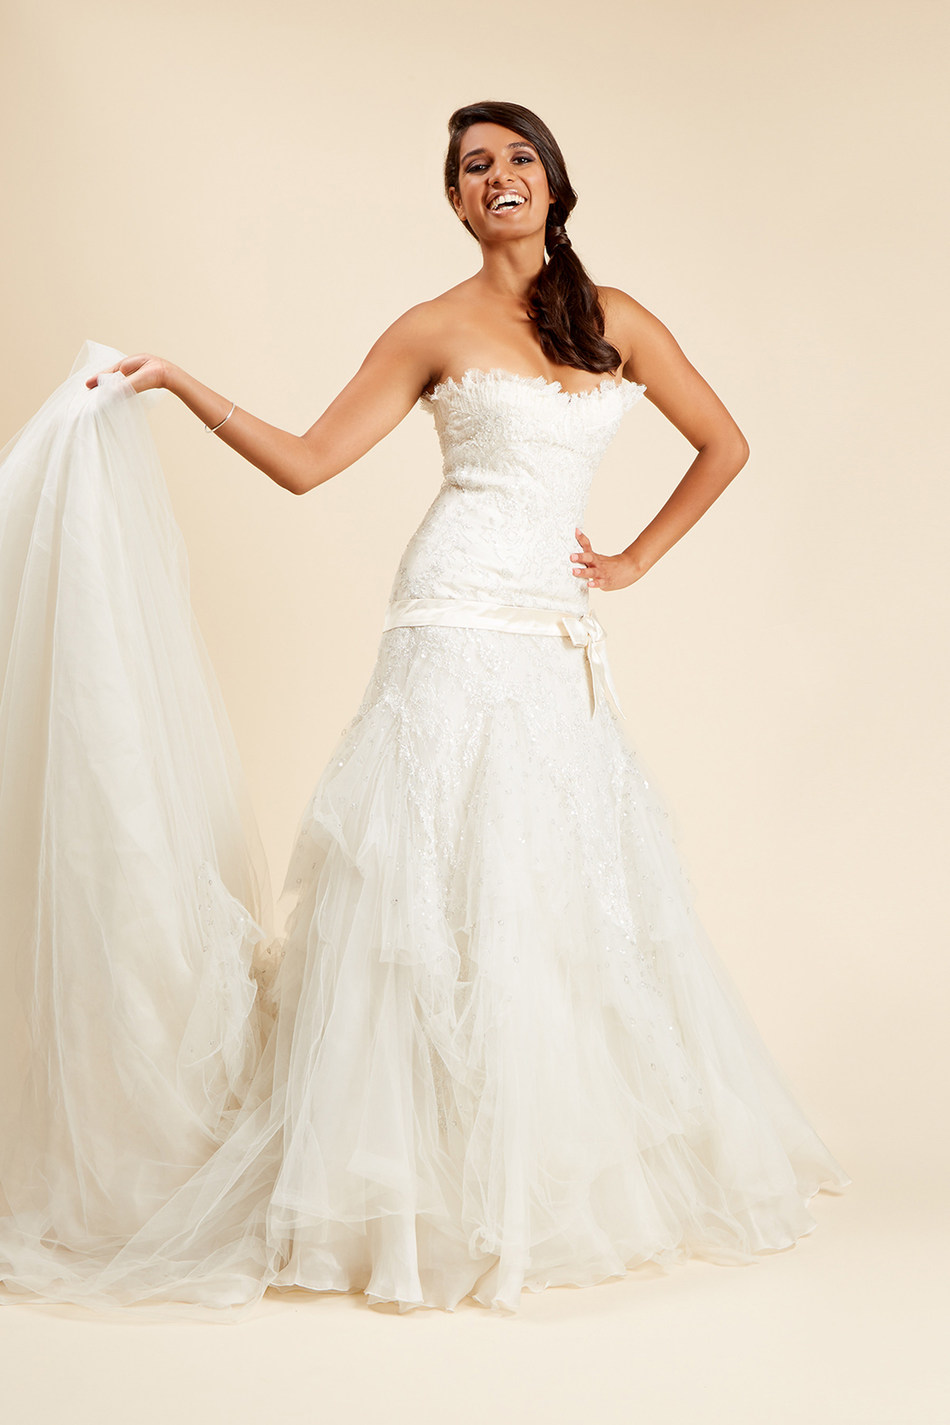 Elie Saab for Pronovias, pre-loved wedding dress available at Brides do Good (c) Brides do Good